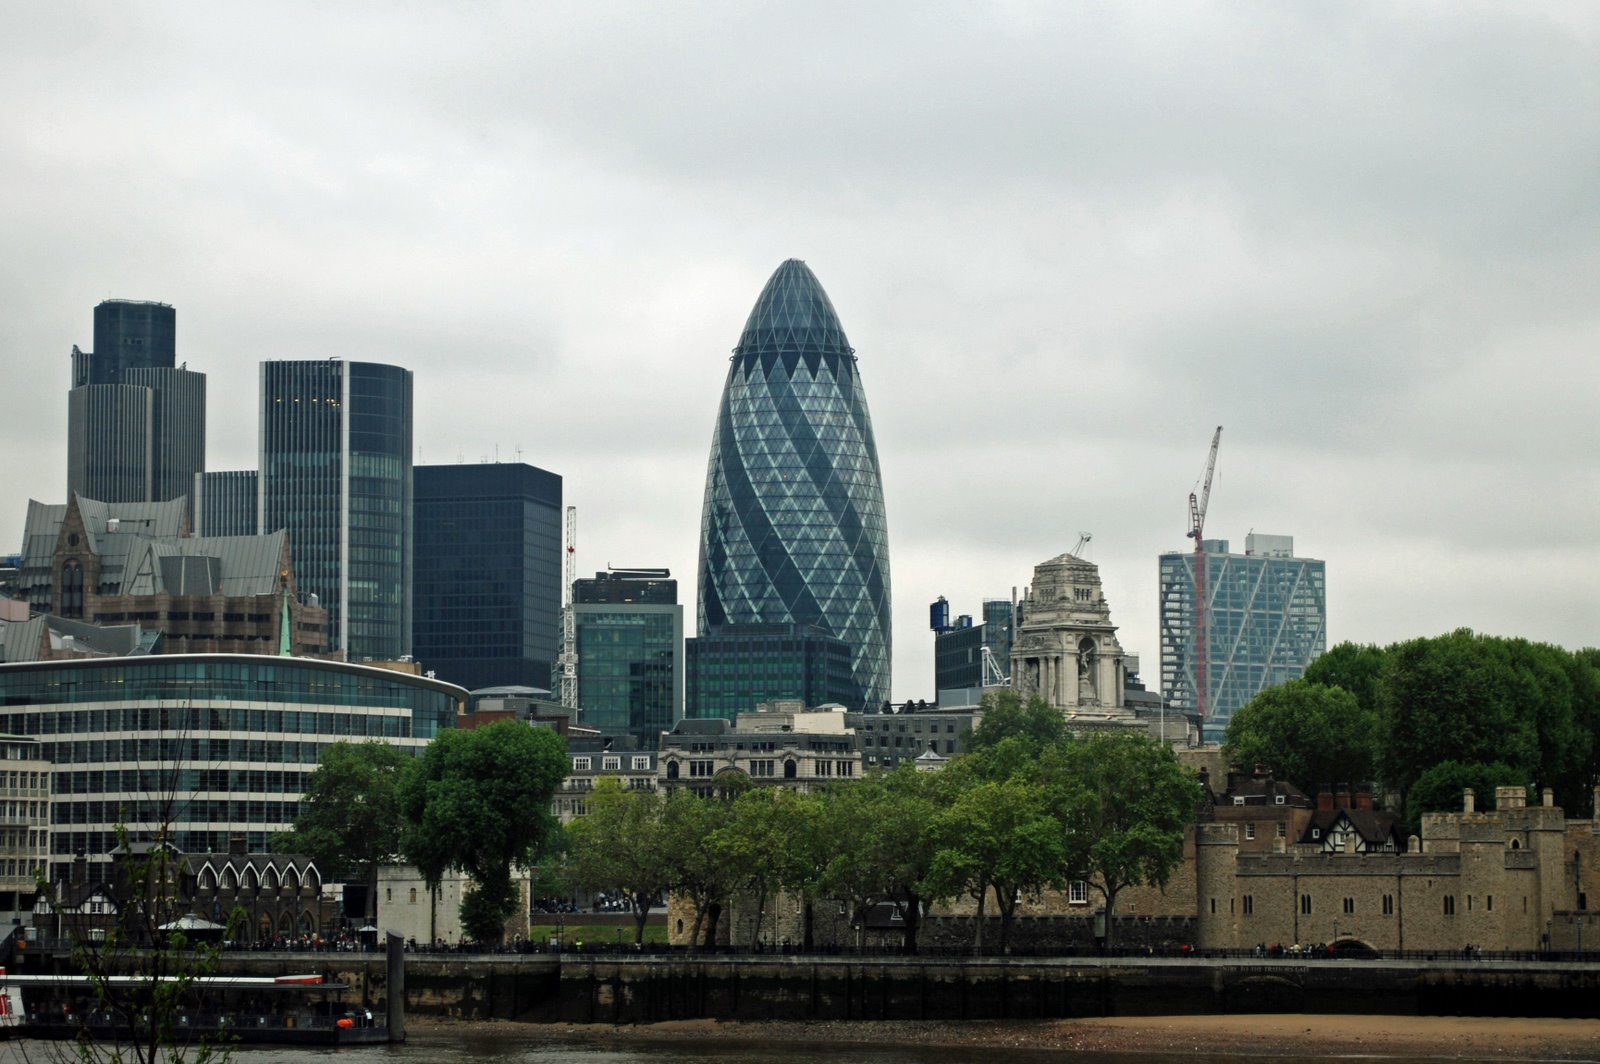 gherkin, egg shaped building in london